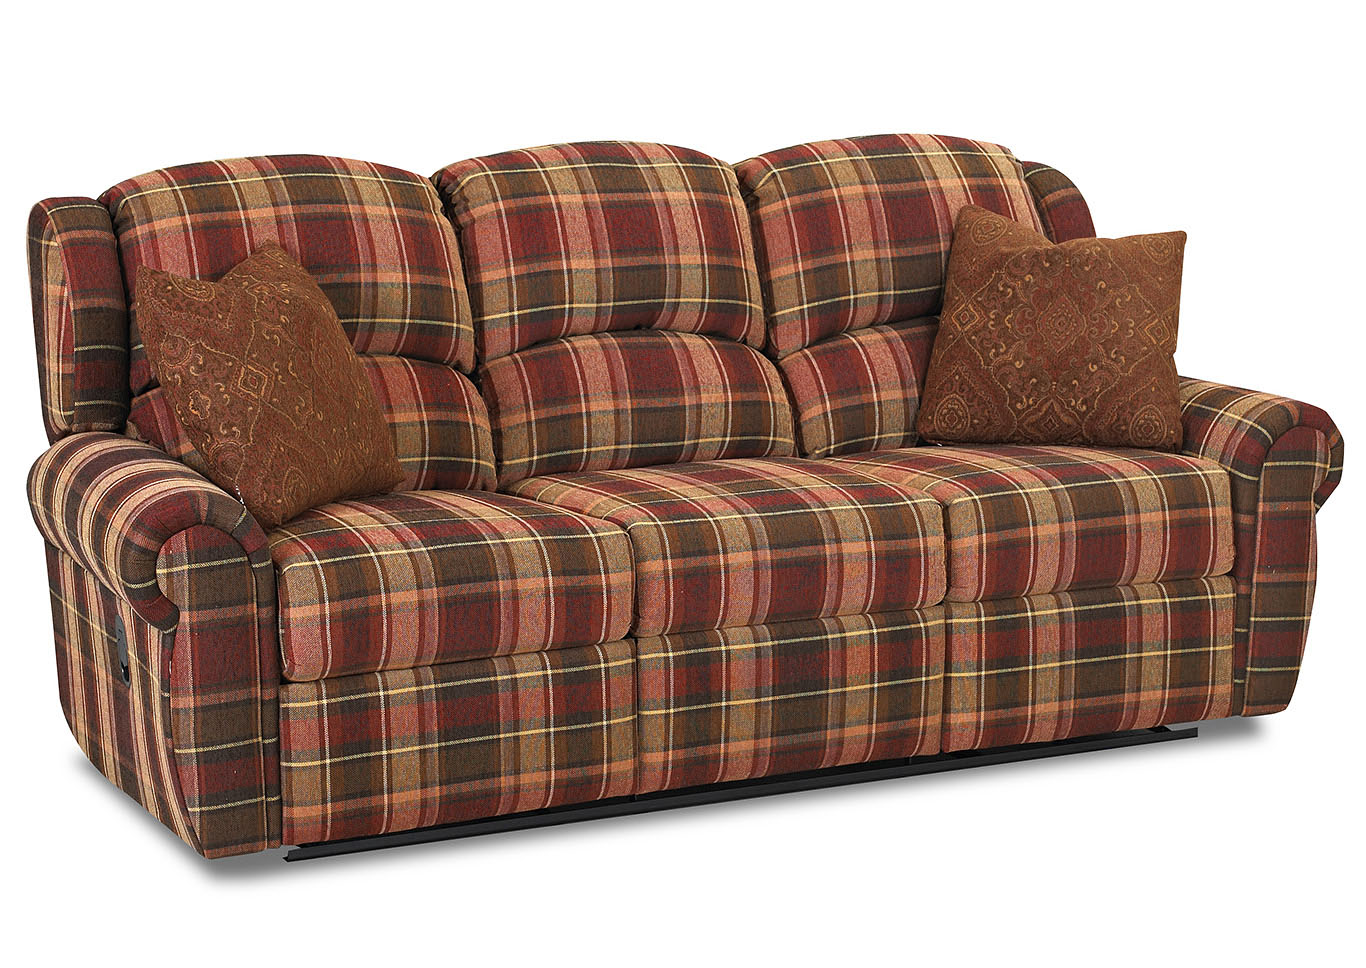 Best Buy Furniture and Mattress Mcalister Reclining Fabric Sofa